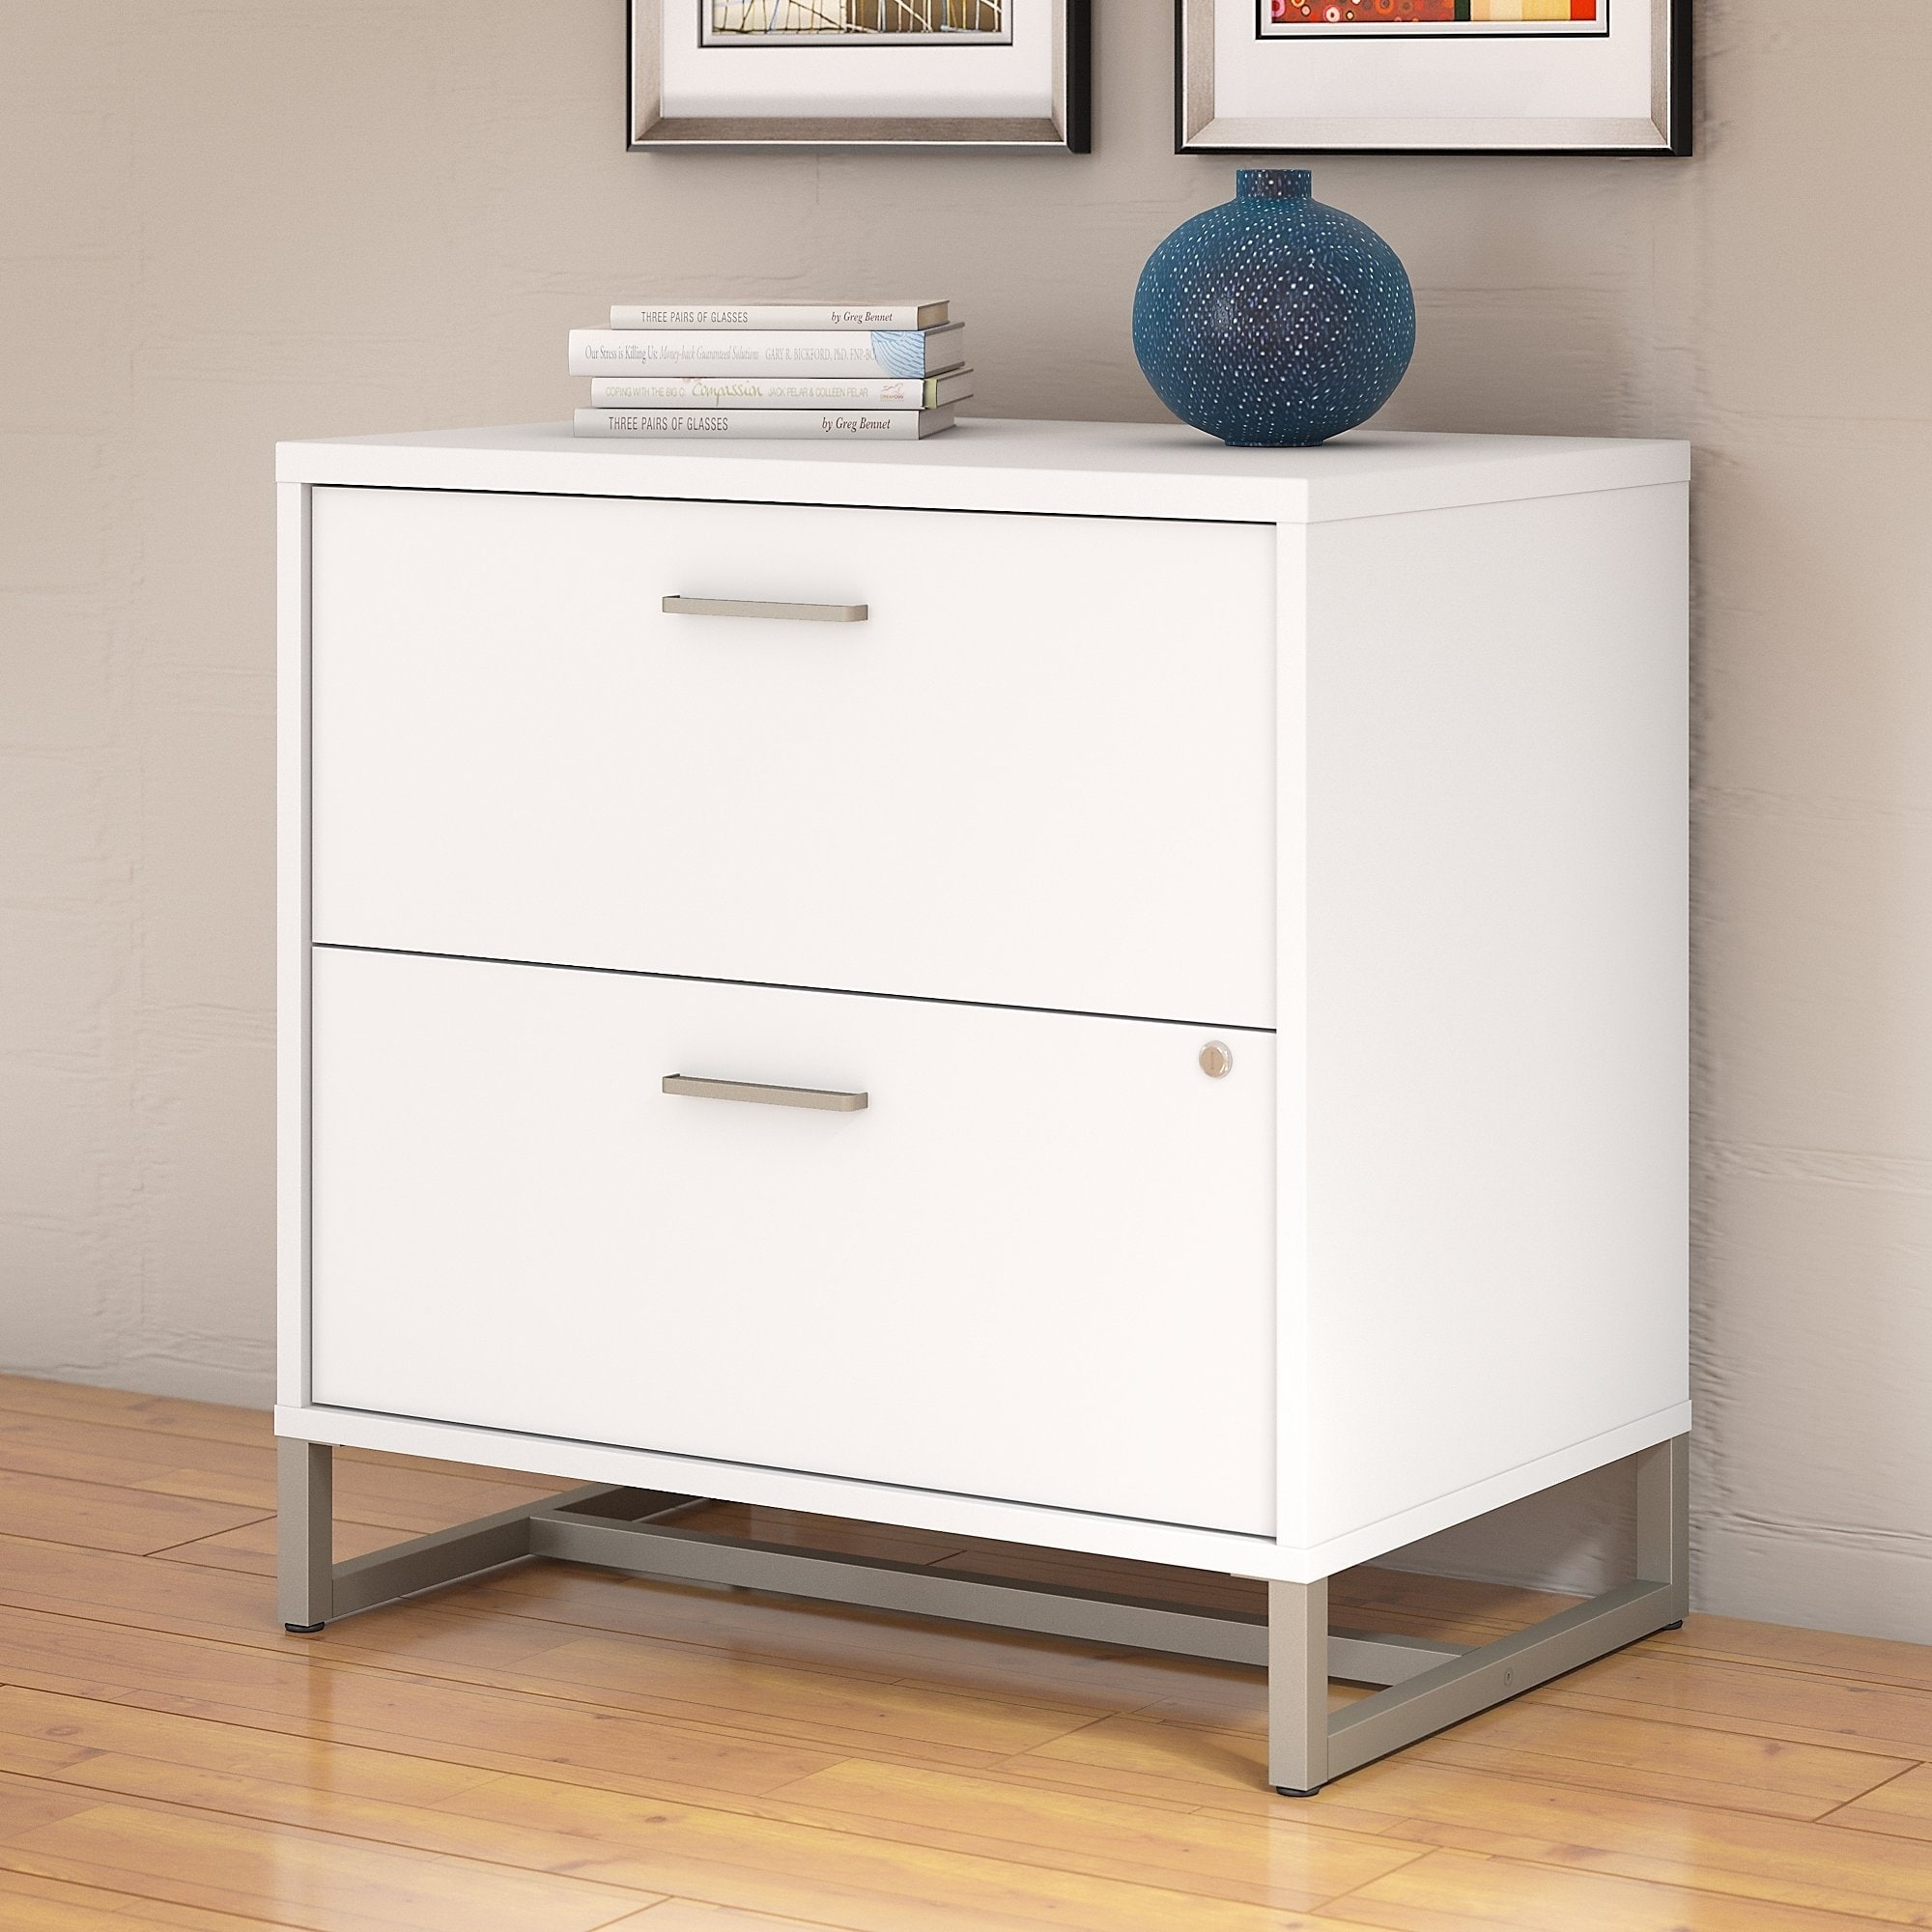 Method Lateral File Cabinet In White From Office By Kathy Ireland